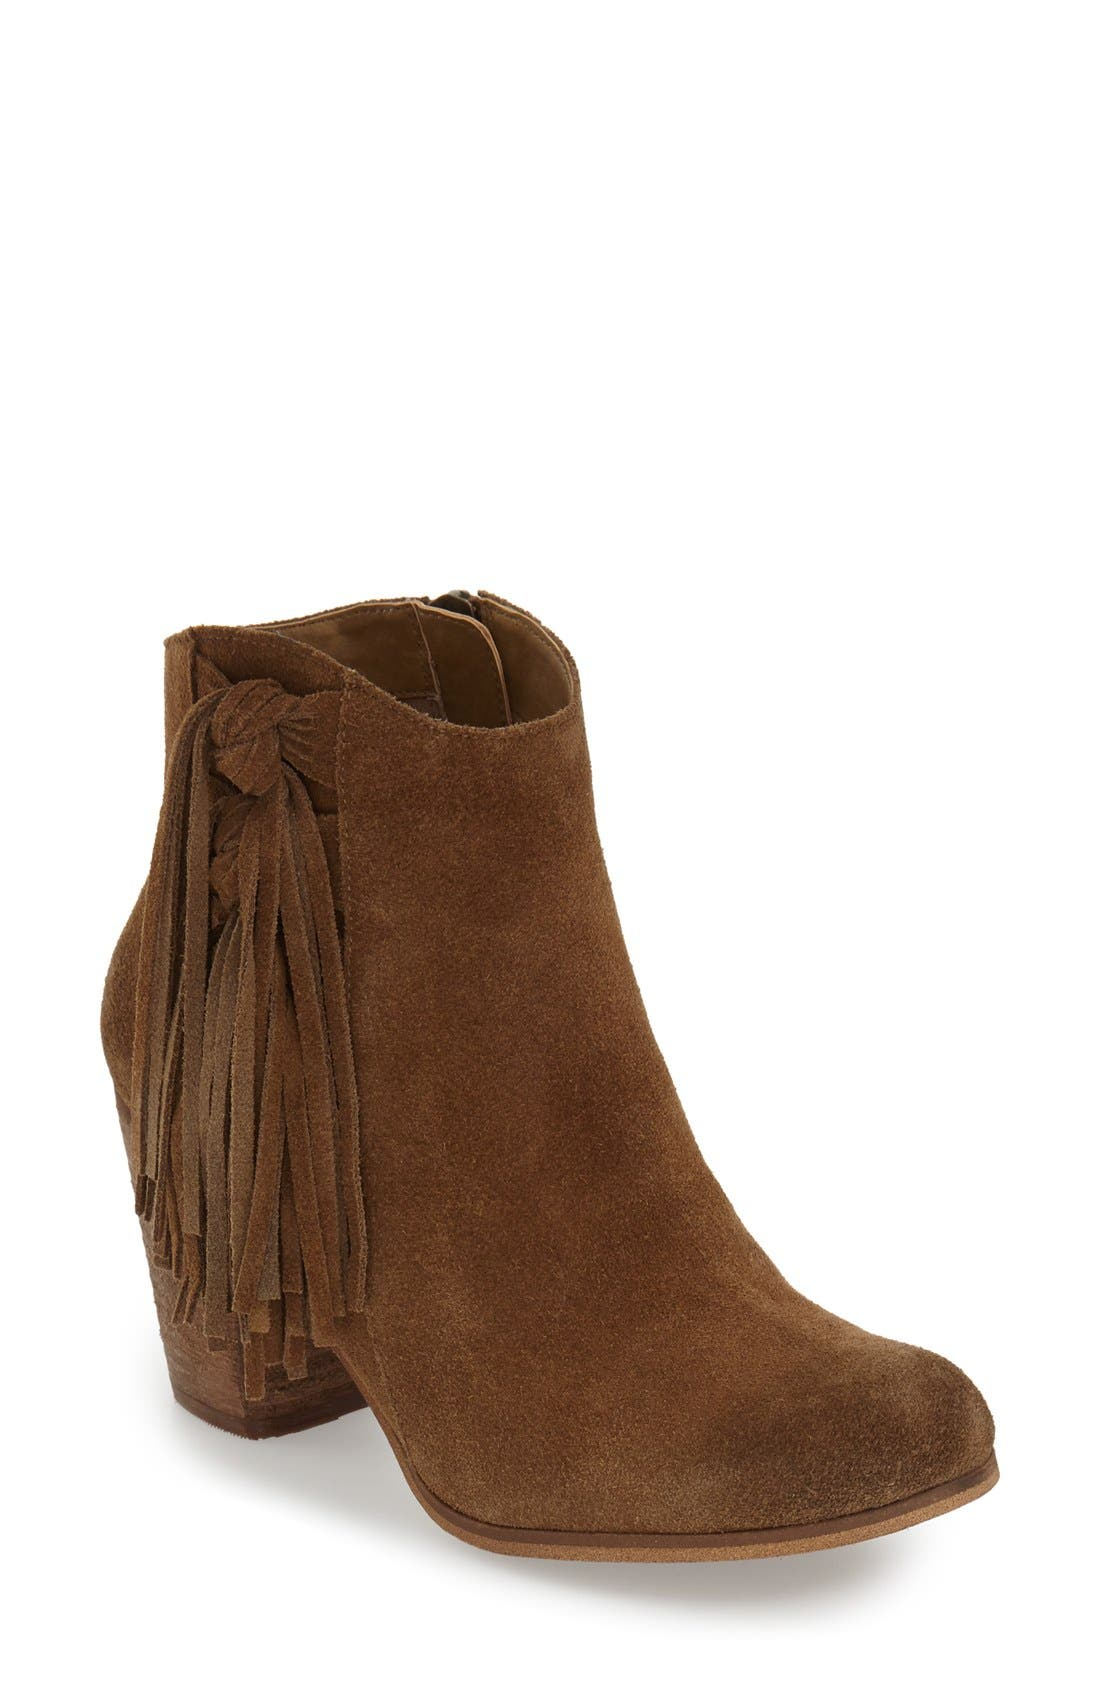 Alternate Image 1 Selected - BP. 'Talton' Fringe Bootie (Women)